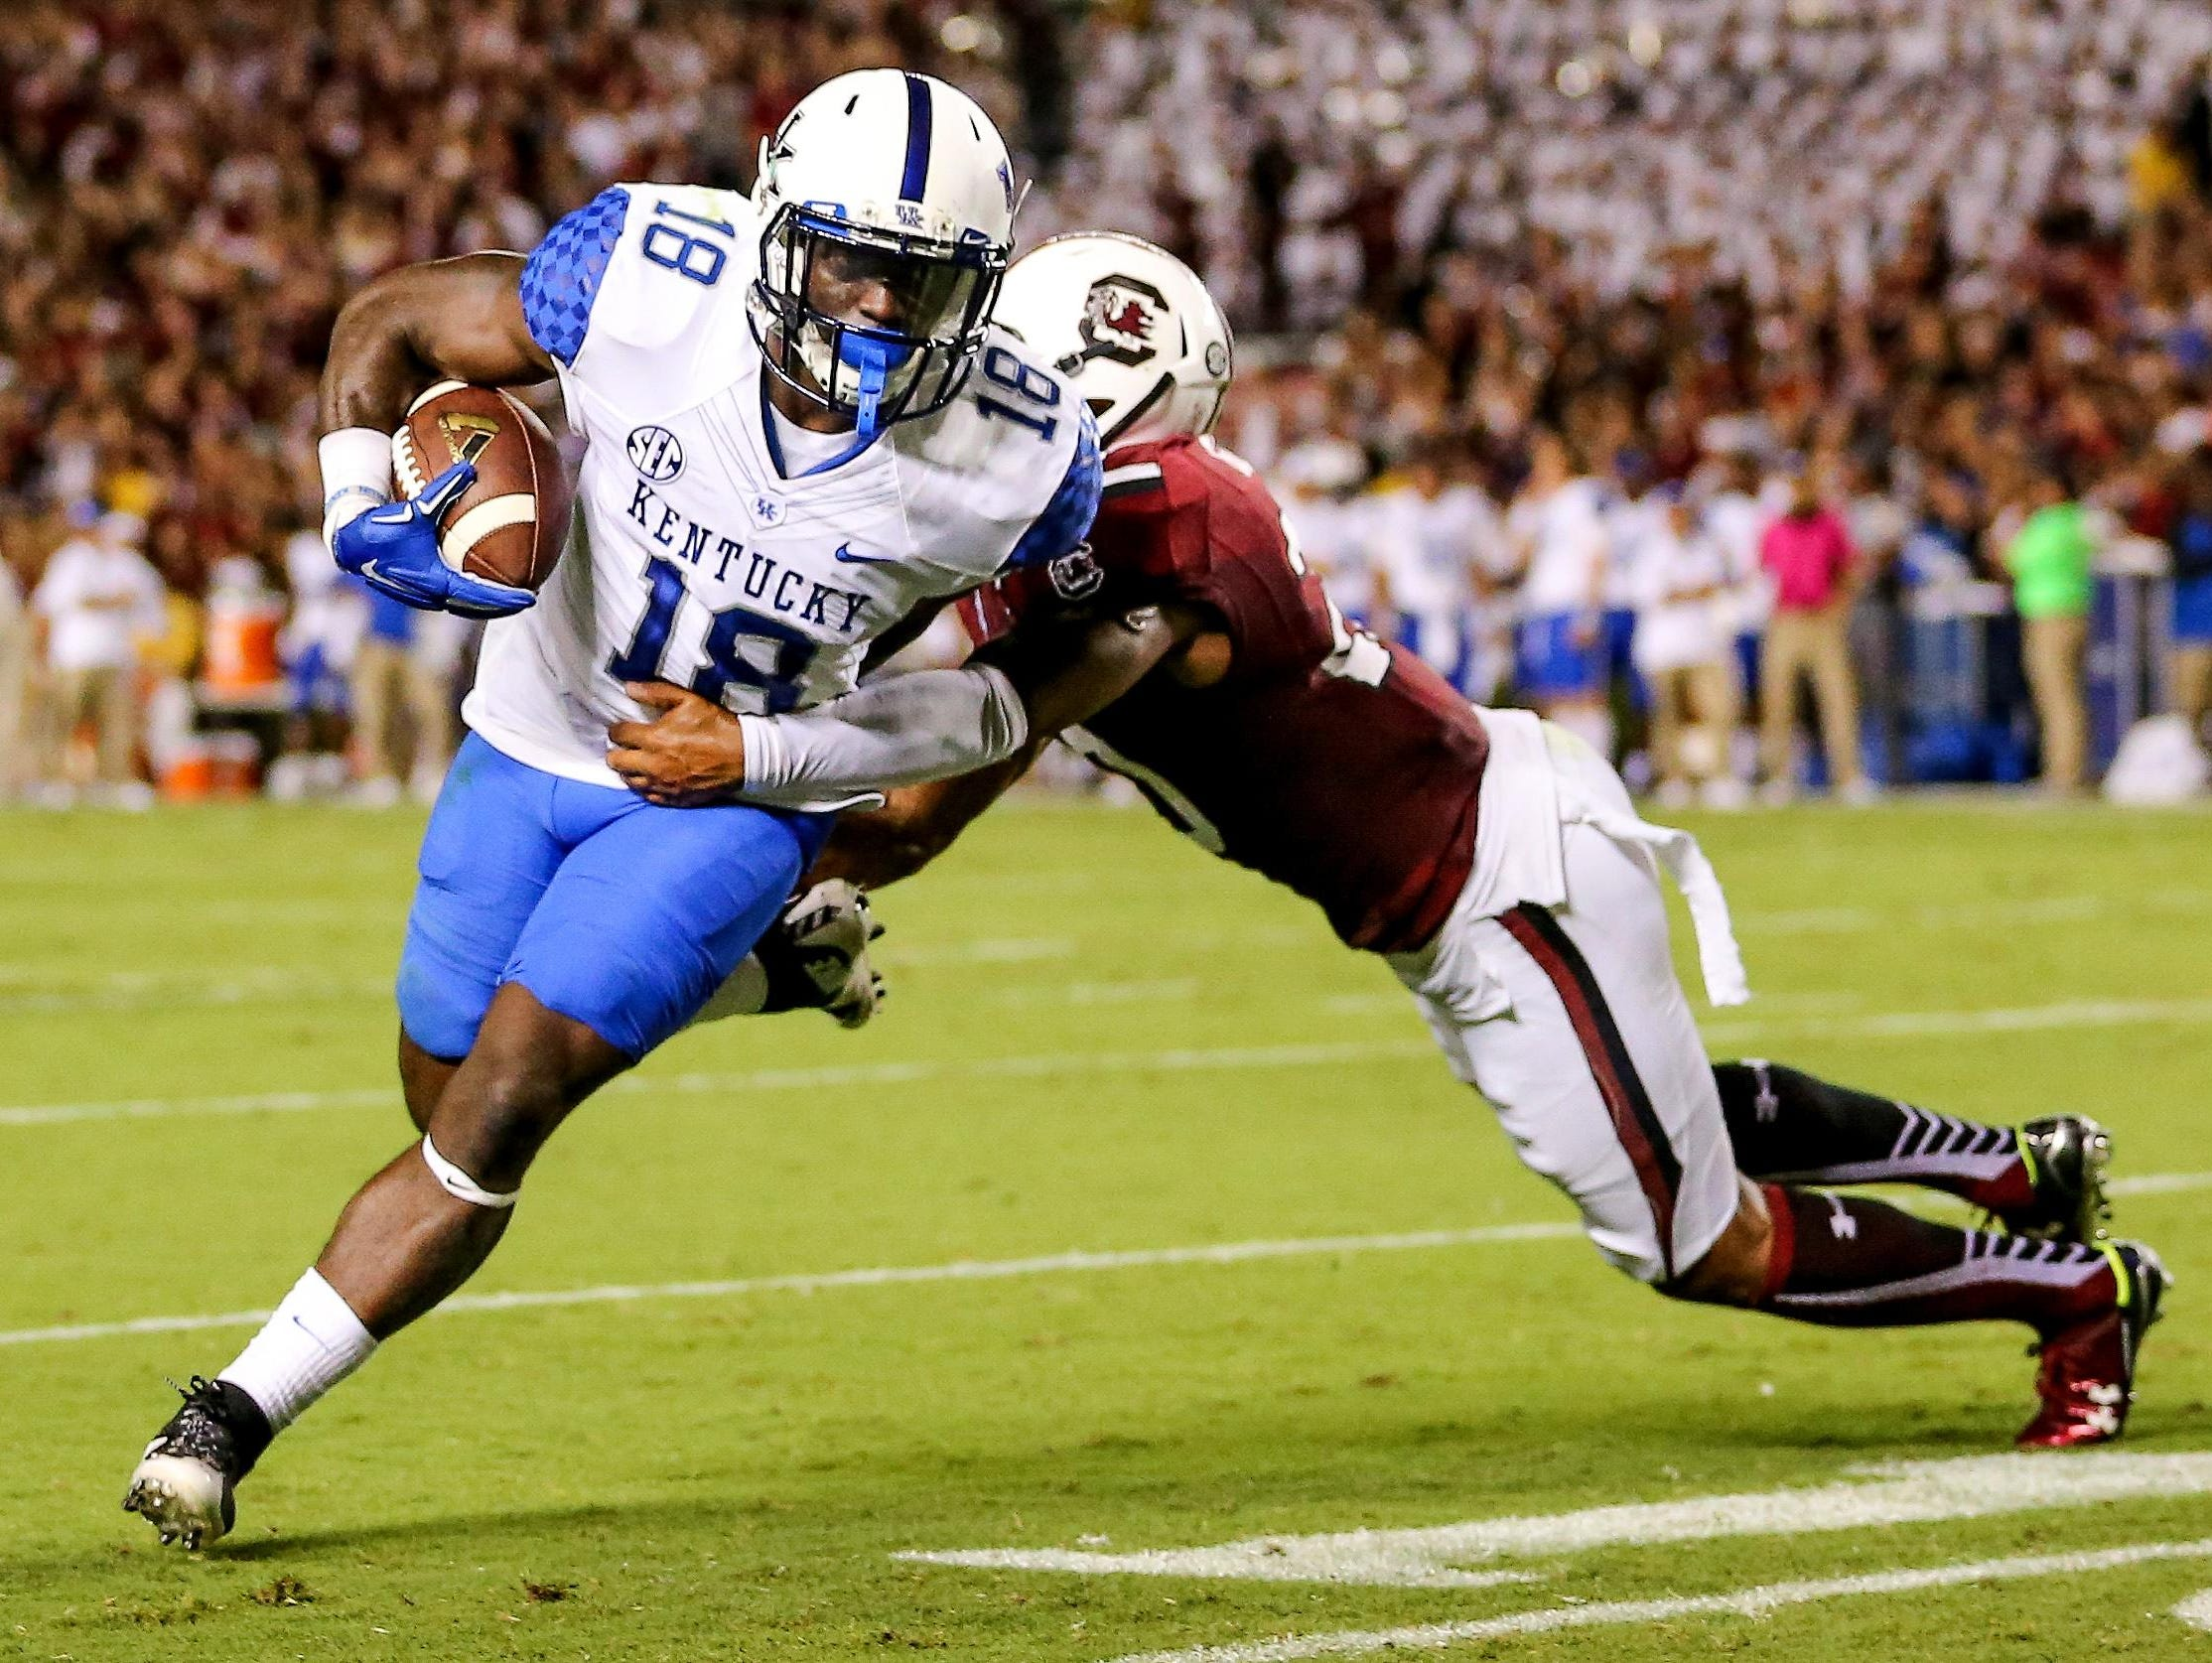 Sep 12, 2015; Columbia, SC, USA; Kentucky Wildcats running back Stanley Williams (18) runs towards a first down stopped by South Carolina Gamecocks safety T.J. Gurley (20) during the second quarter at Williams-Brice Stadium.